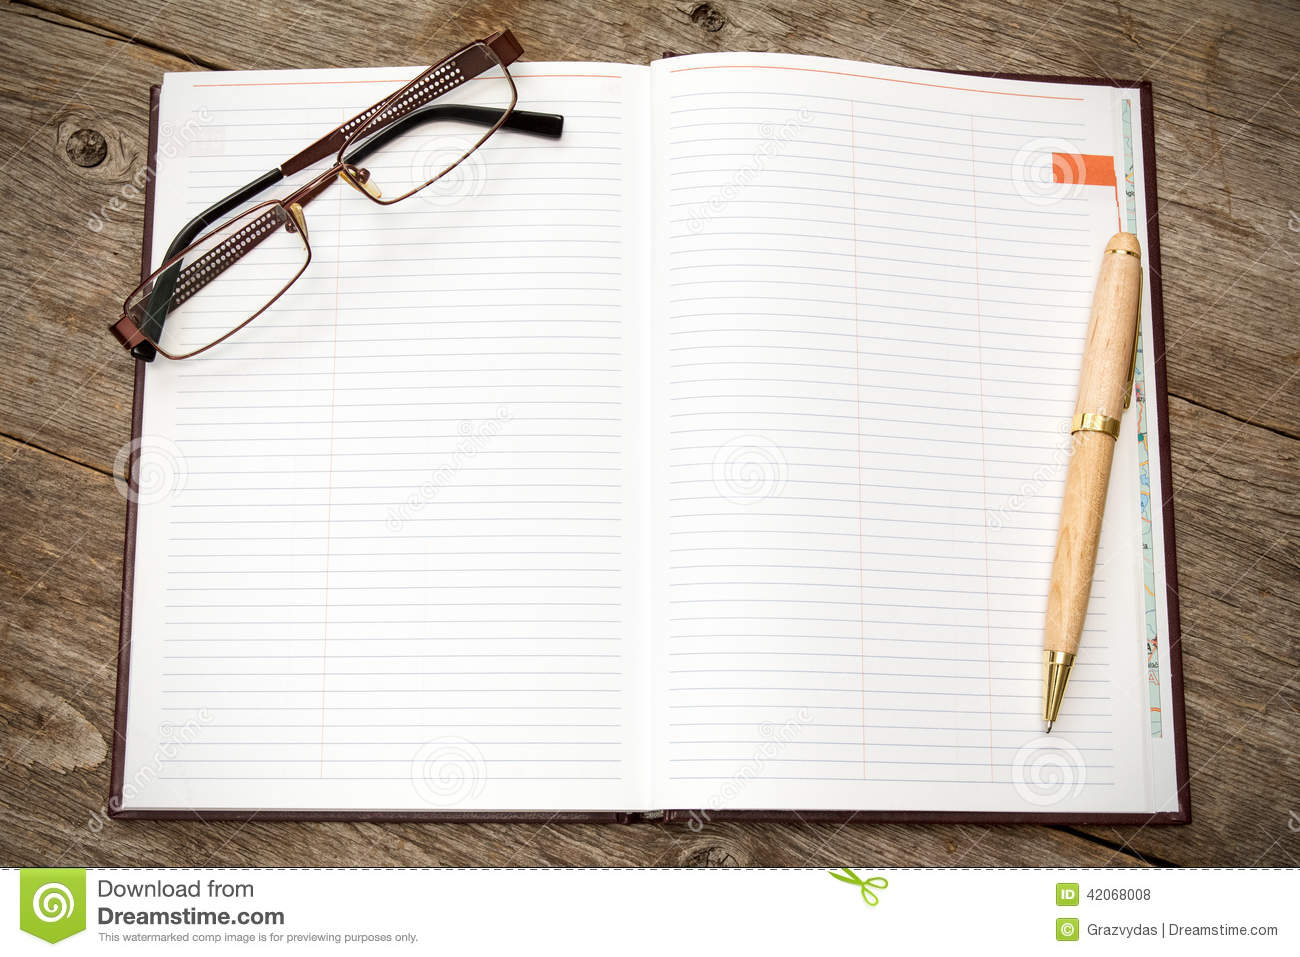 Notebook And Pen Sketch Stock Vector Art More Images Of: Open Notebook With Pen And Glasses Stock Photo